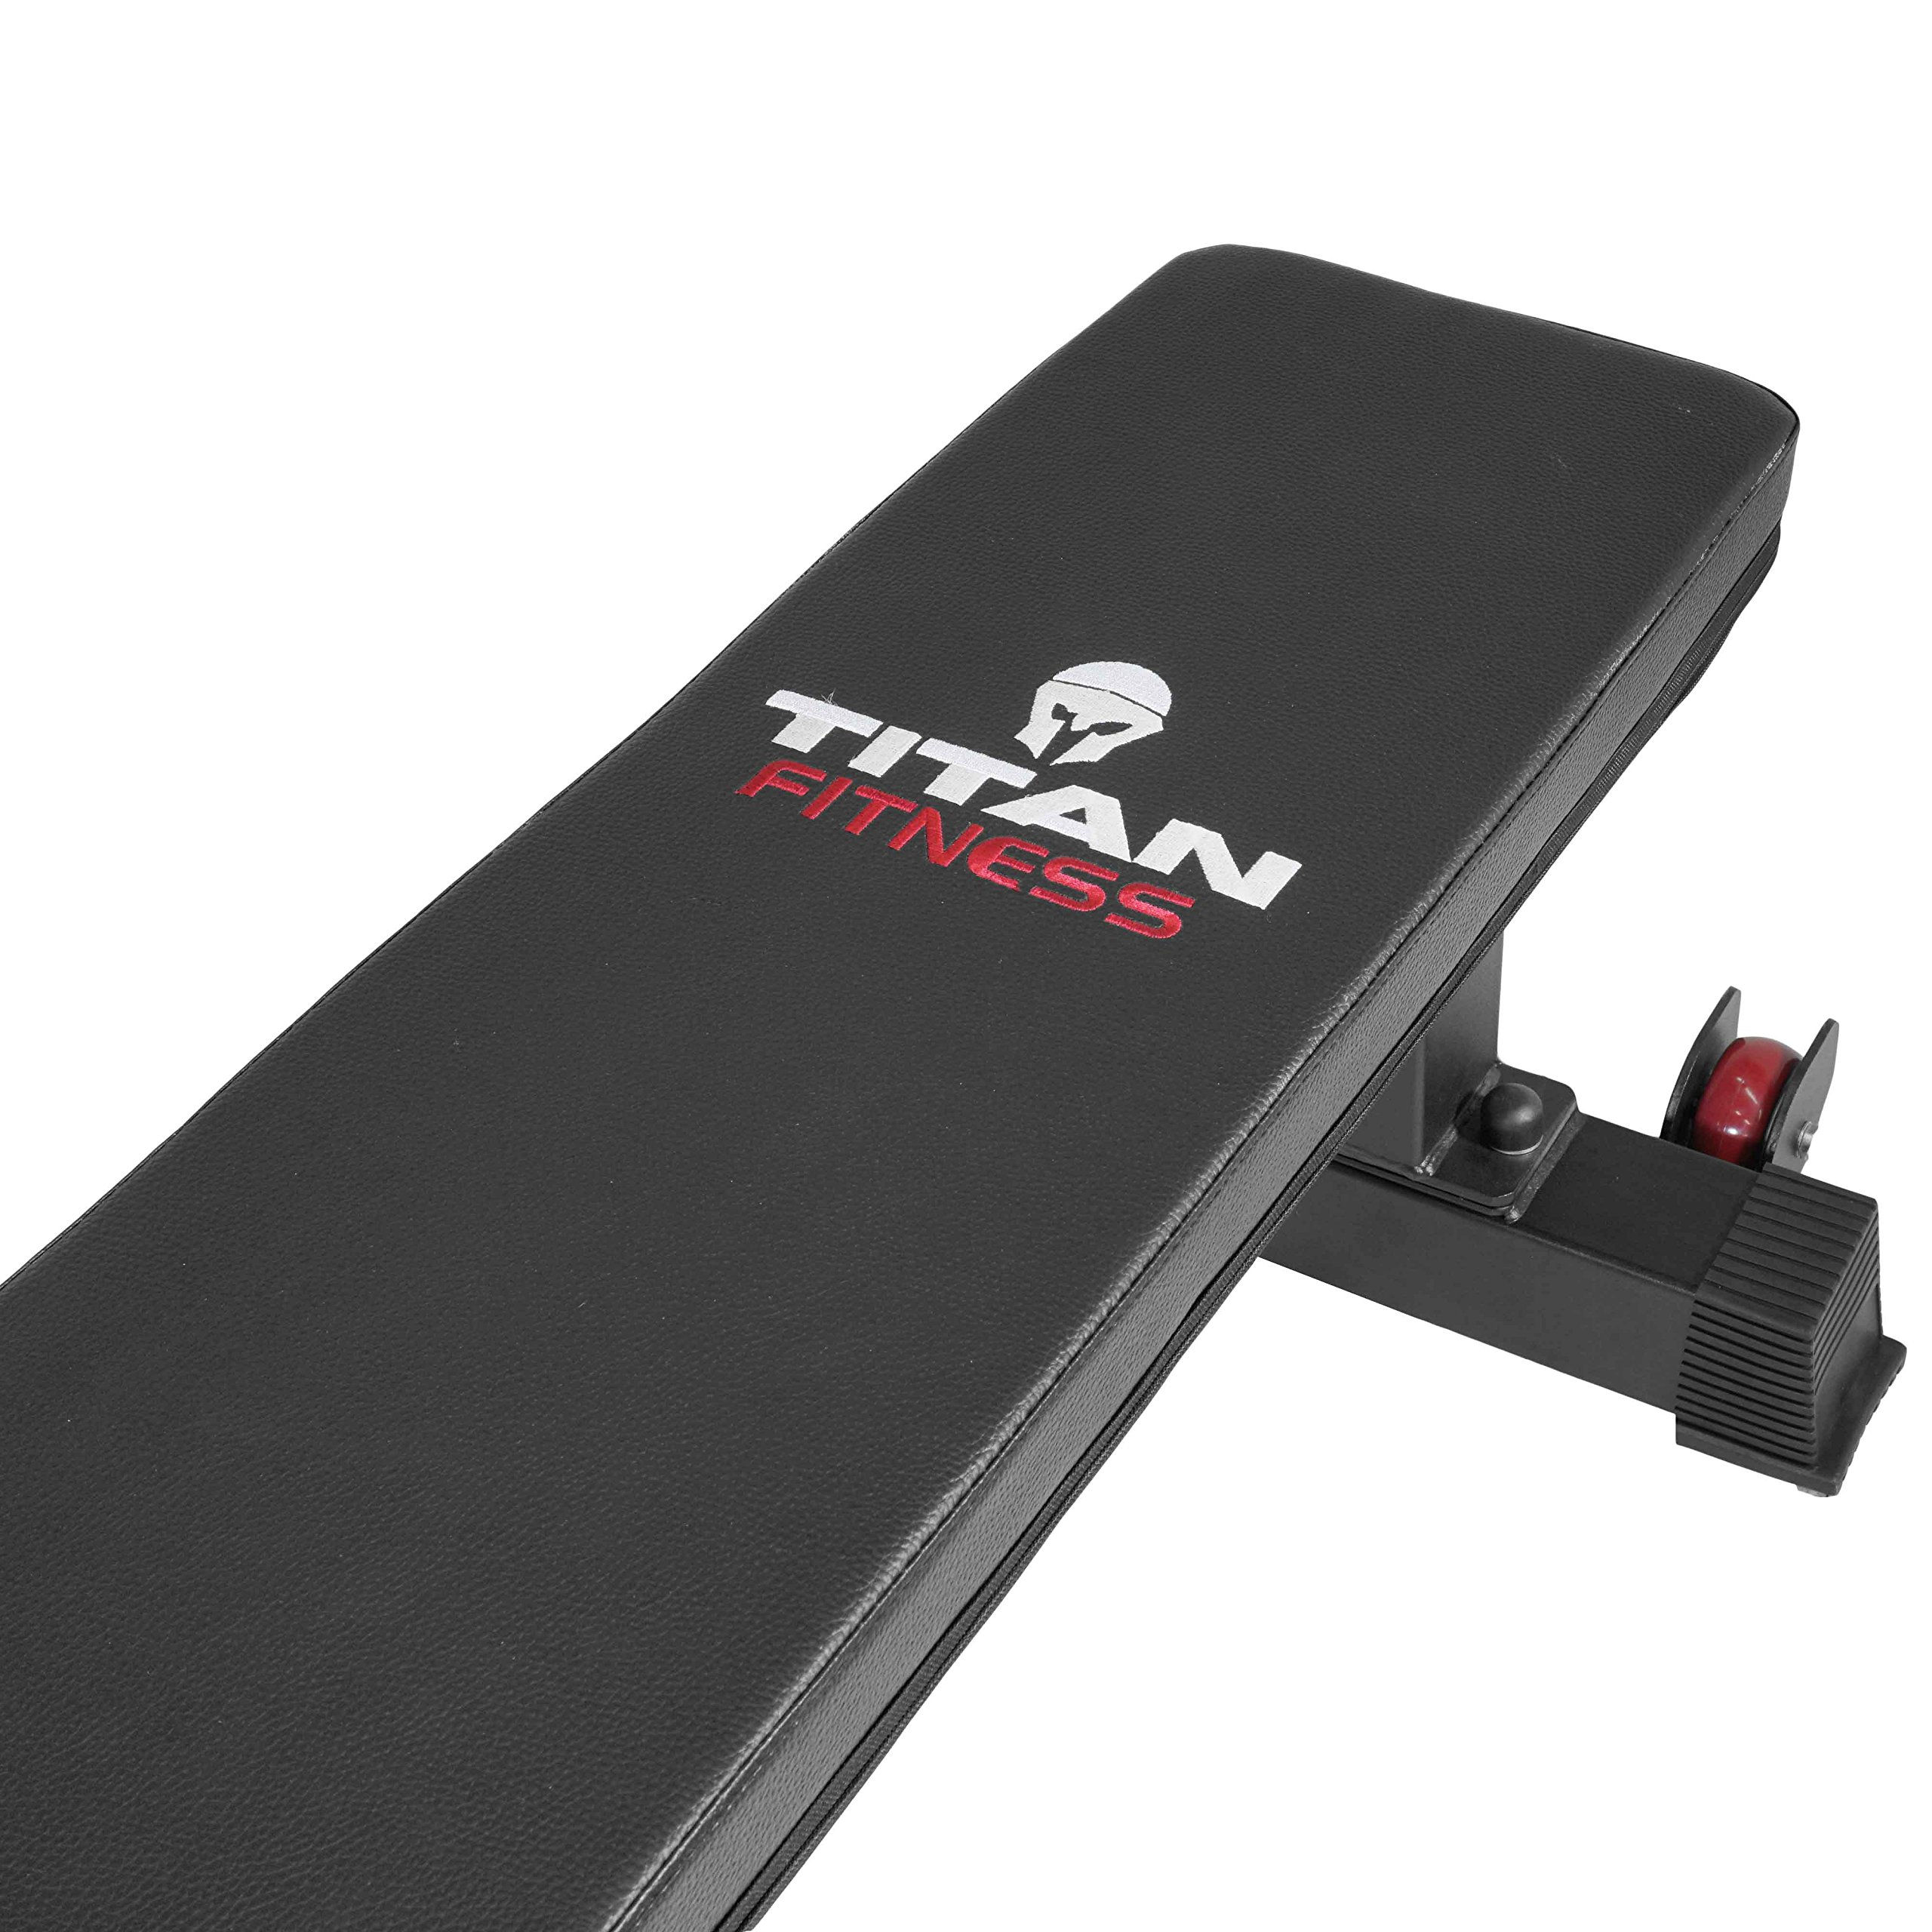 Titan Fitness Flat Weight Bench 1,000 lb Rated Capacity w/ Handle & Wheels by Titan Fitness (Image #7)